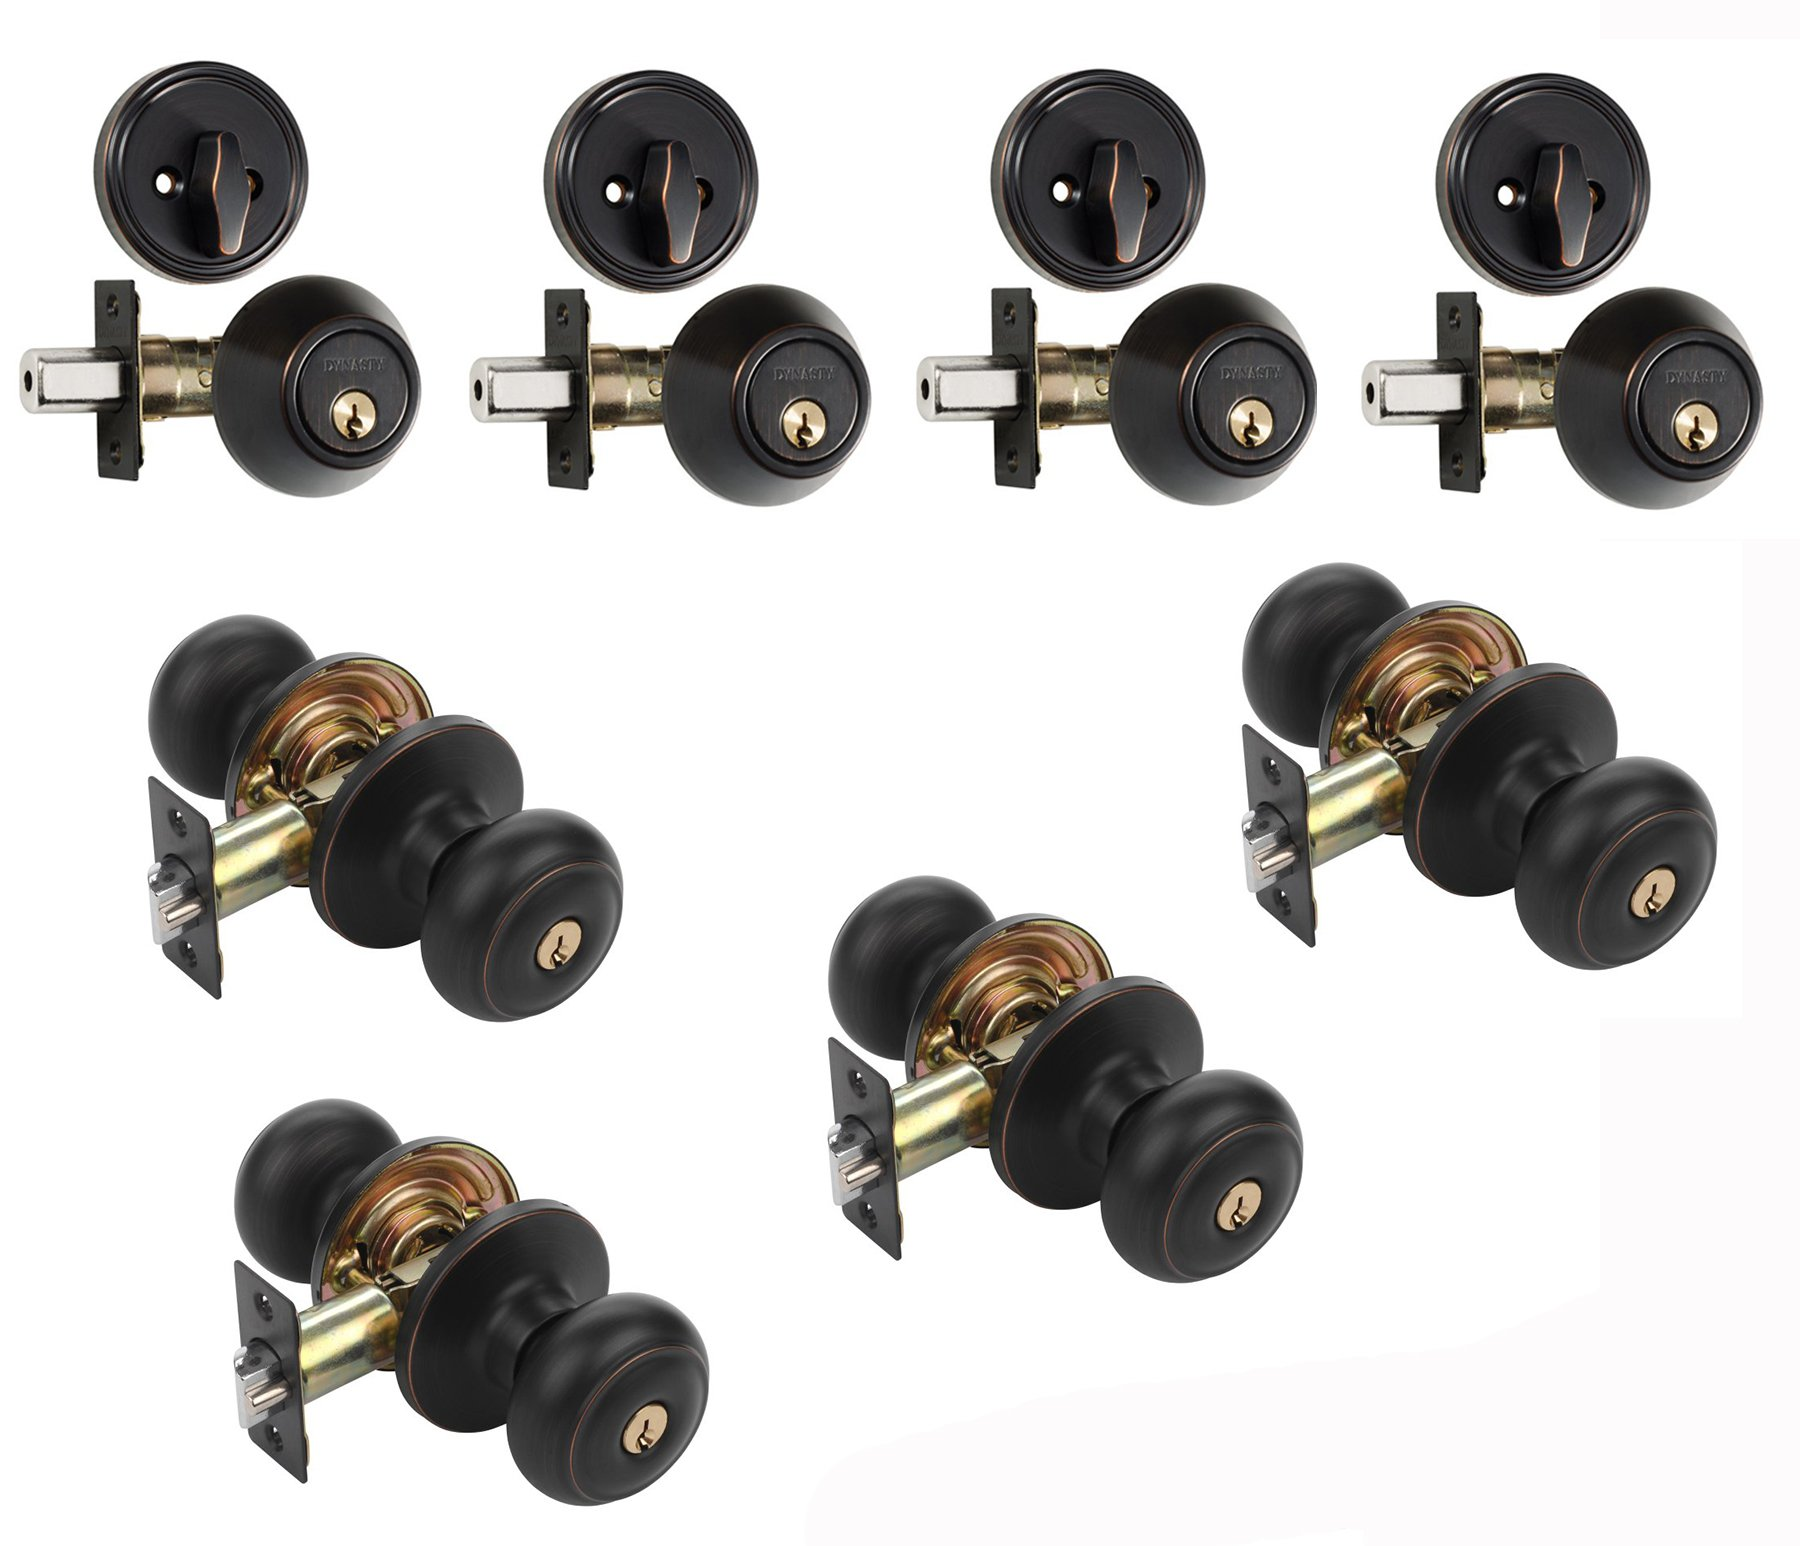 Dynasty Hardware CP-SIE-12P, Sierra Entry Door Knob Lockset and Single Cylinder Deadbolt Combination Set, Aged Oil Rubbed Bronze (4 Pack) Keyed Alike